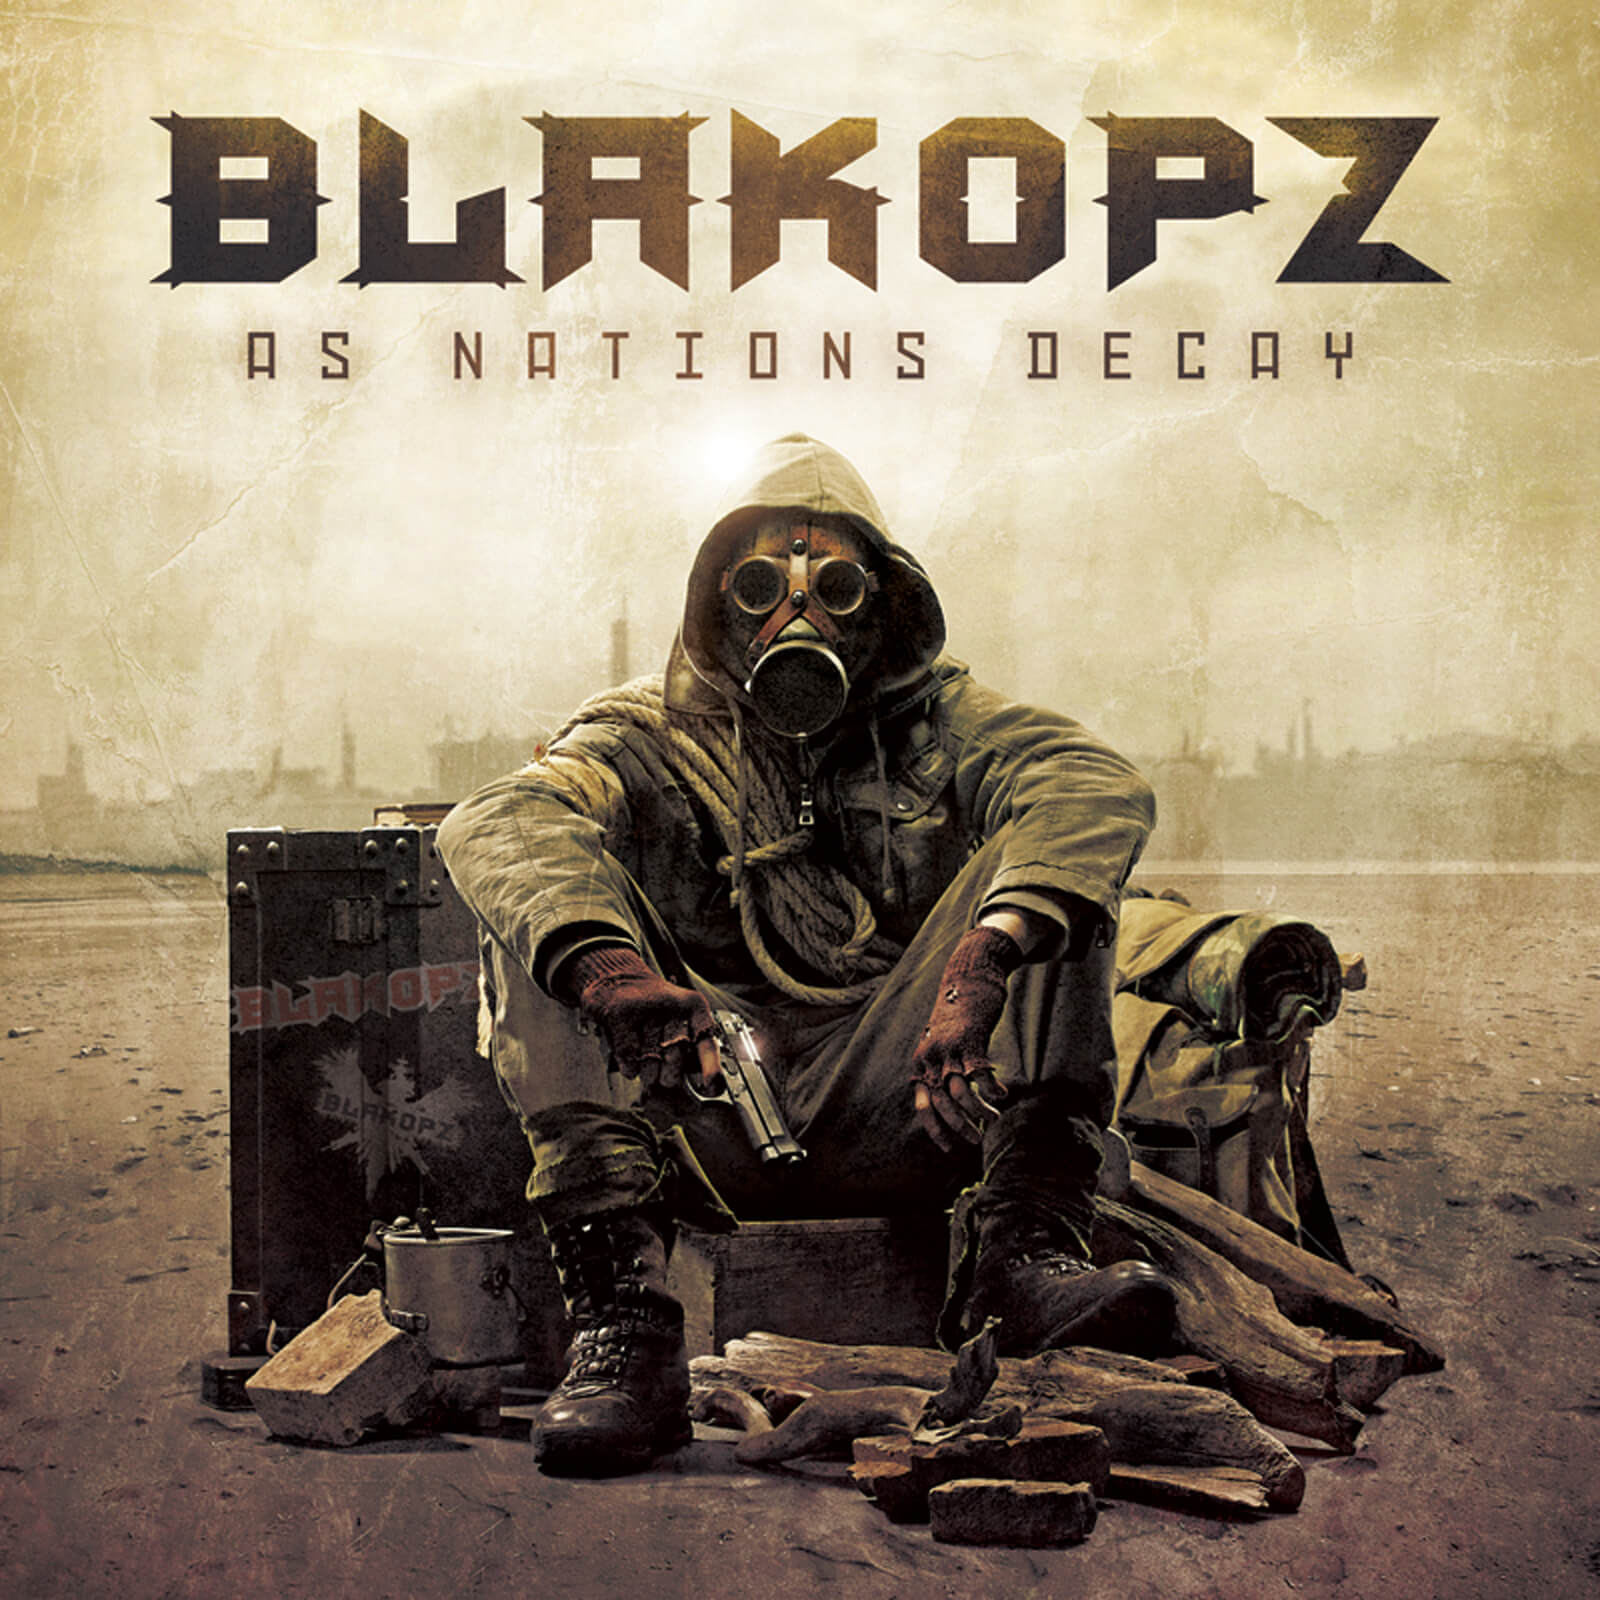 blakOpz - as nations decay